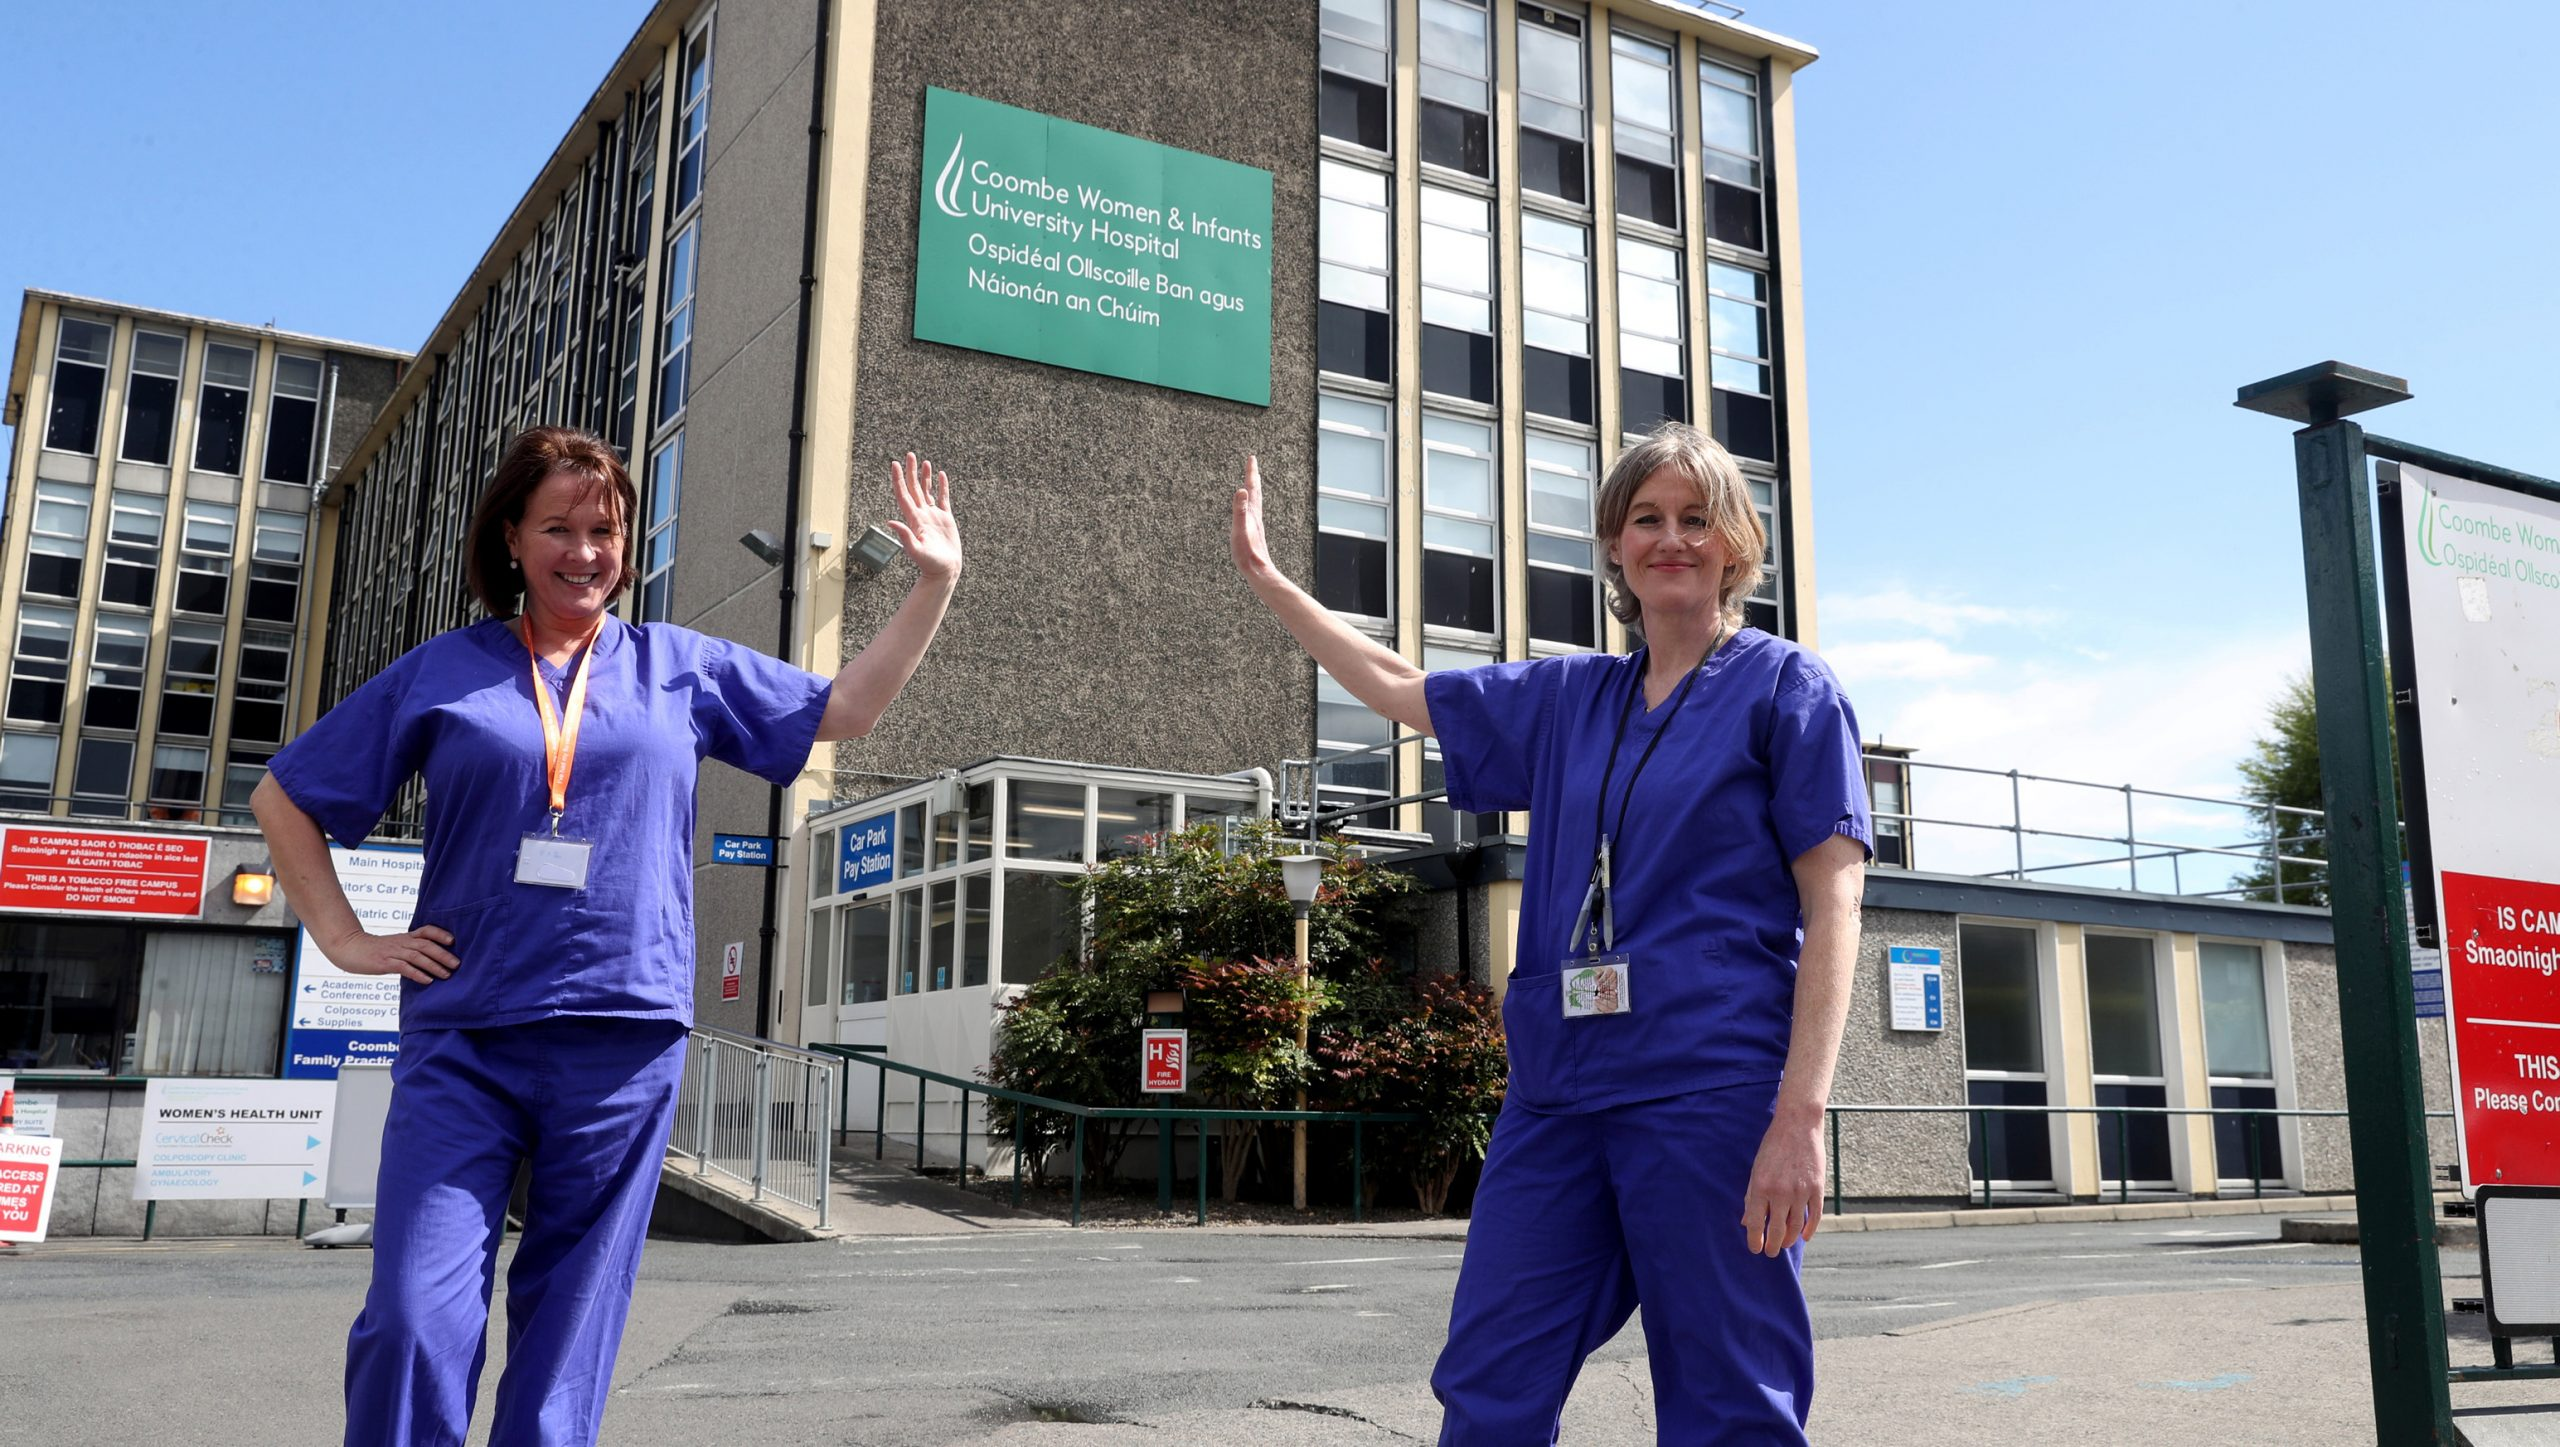 Repro Free Monday 4th May 2020: Recognising our Midwives: The Coombe Women & Infants University Hospital marks International Day of the Midwife, a global day of recognition and celebration of the work of midwives. Pictured were Midwives Denise Kiernan and Megan Sheppard. Picture Jason Clarke